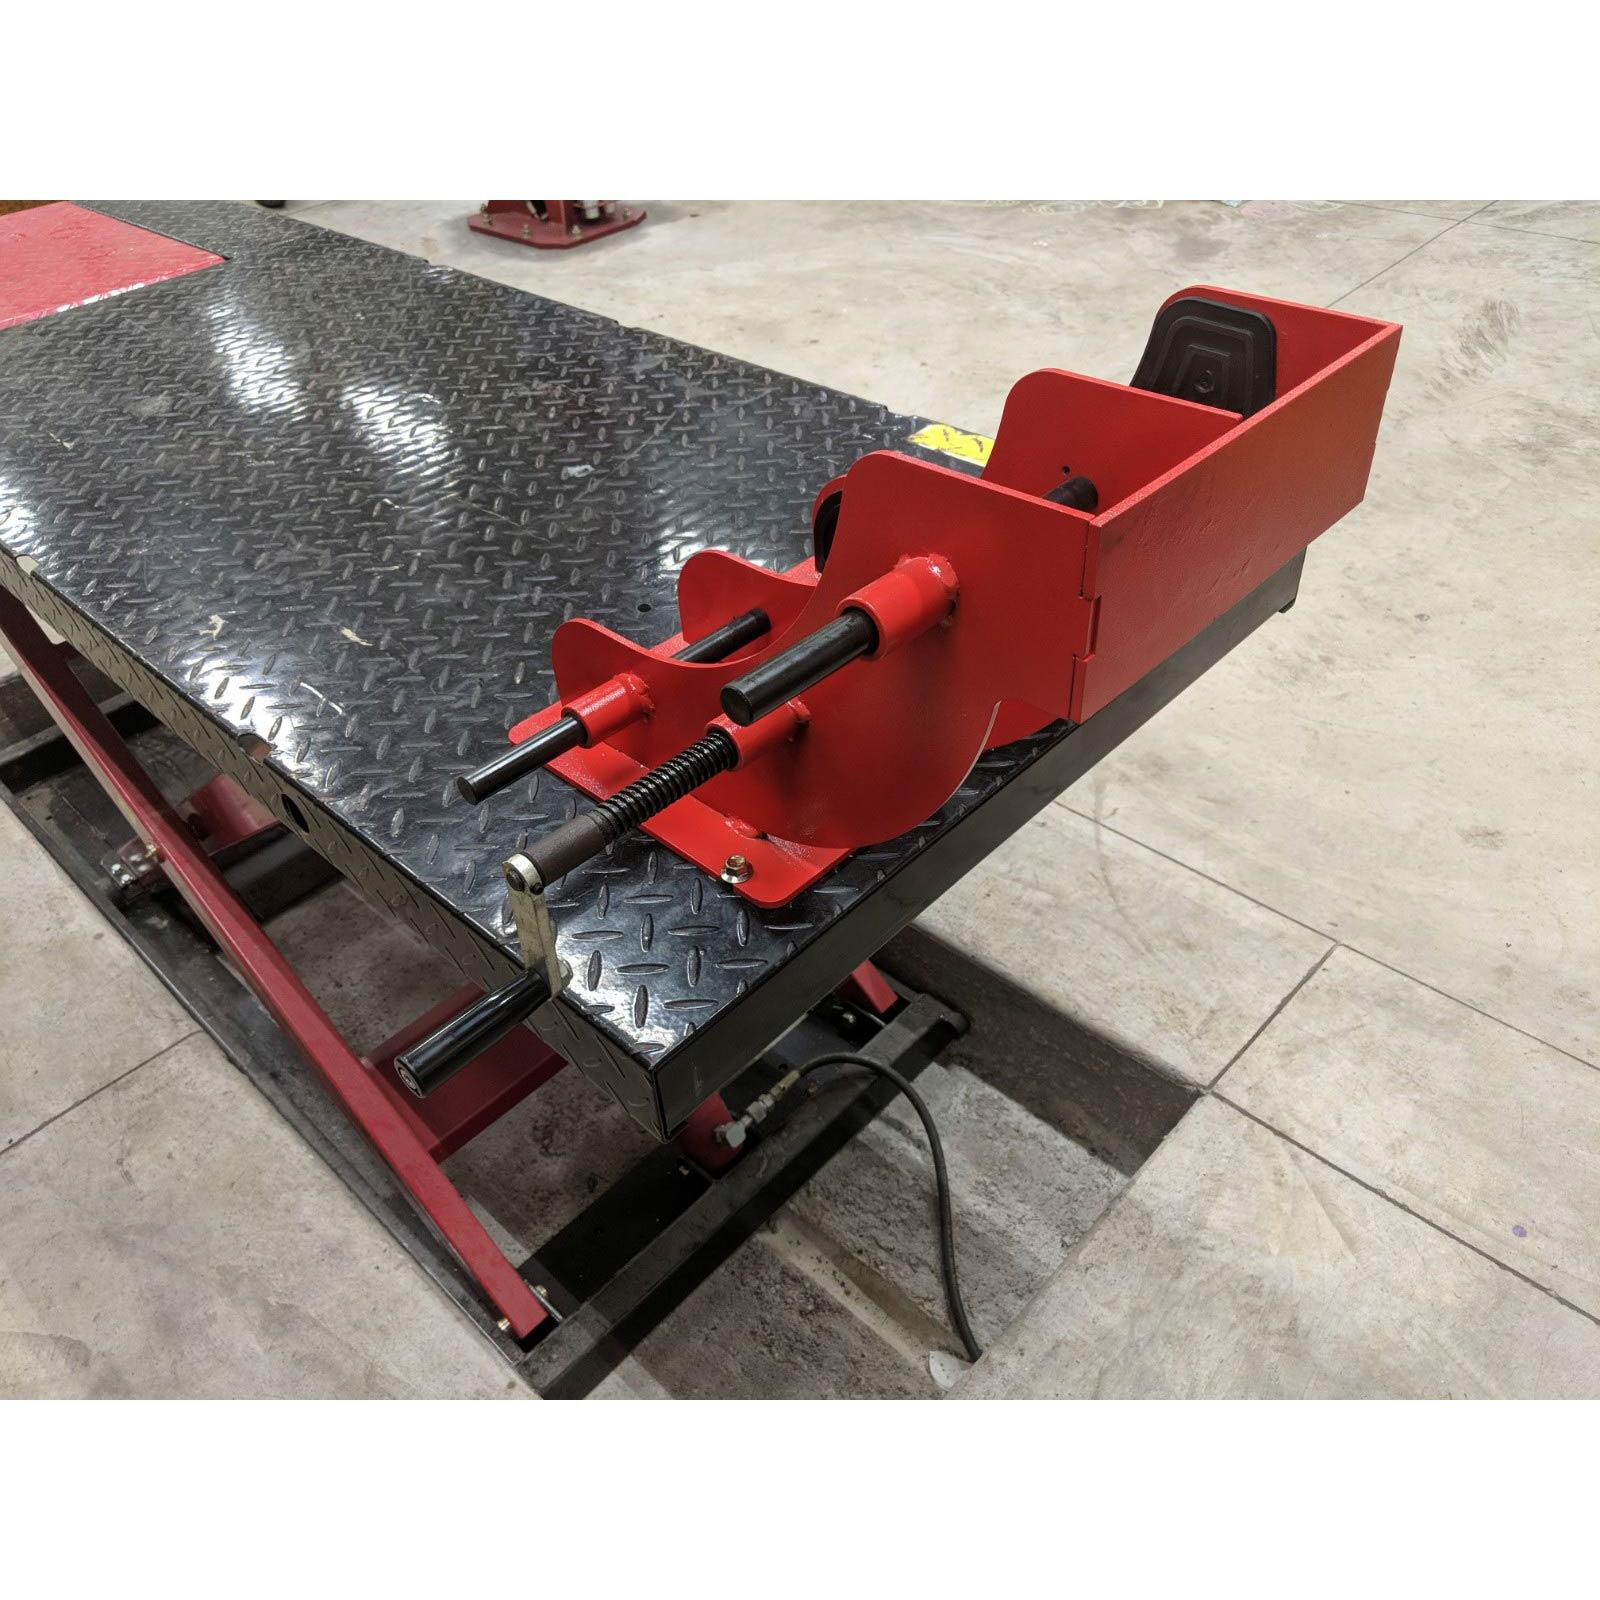 redline motorcycle lift table commercial grade wheel vise